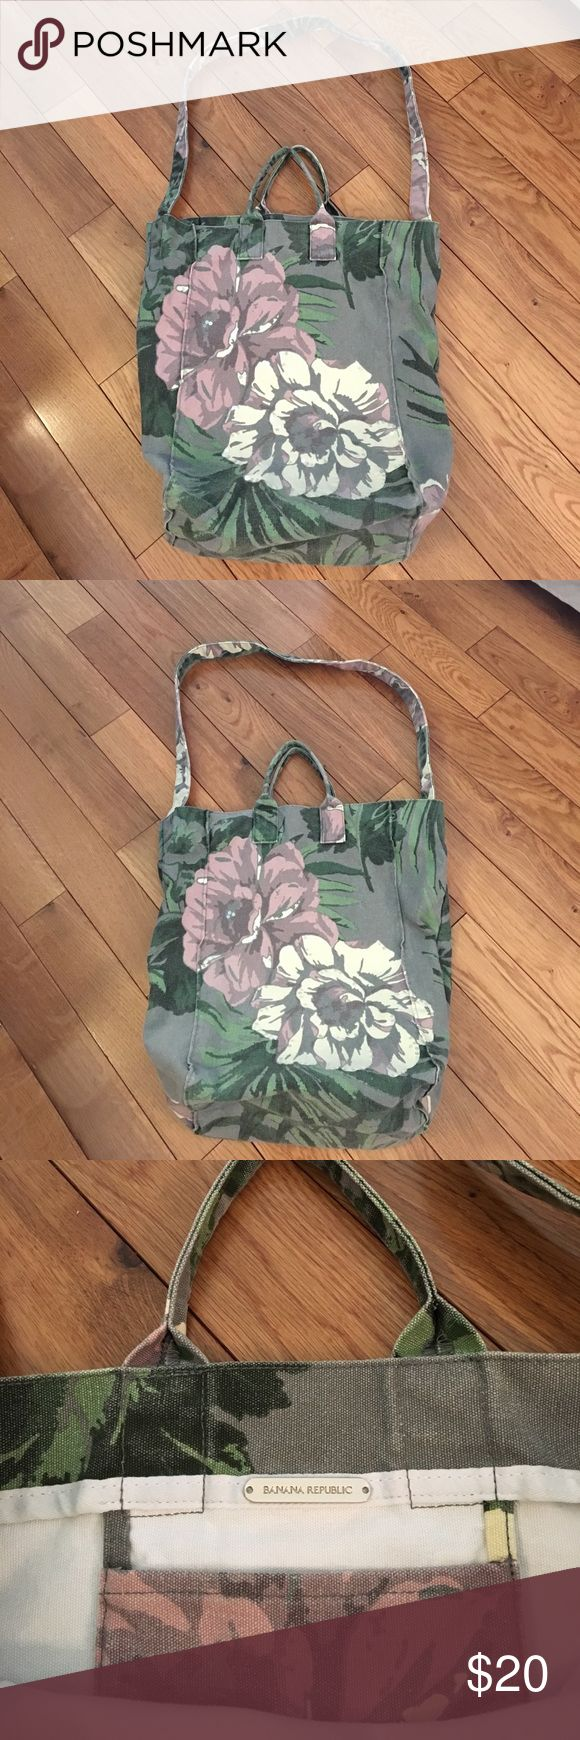 Banana Republic canvas tote bag Unique! Top handles or shoulder strap that can be tucked inside. Inside pocket. Sequin trim on floral print. Banana Republic Bags Totes